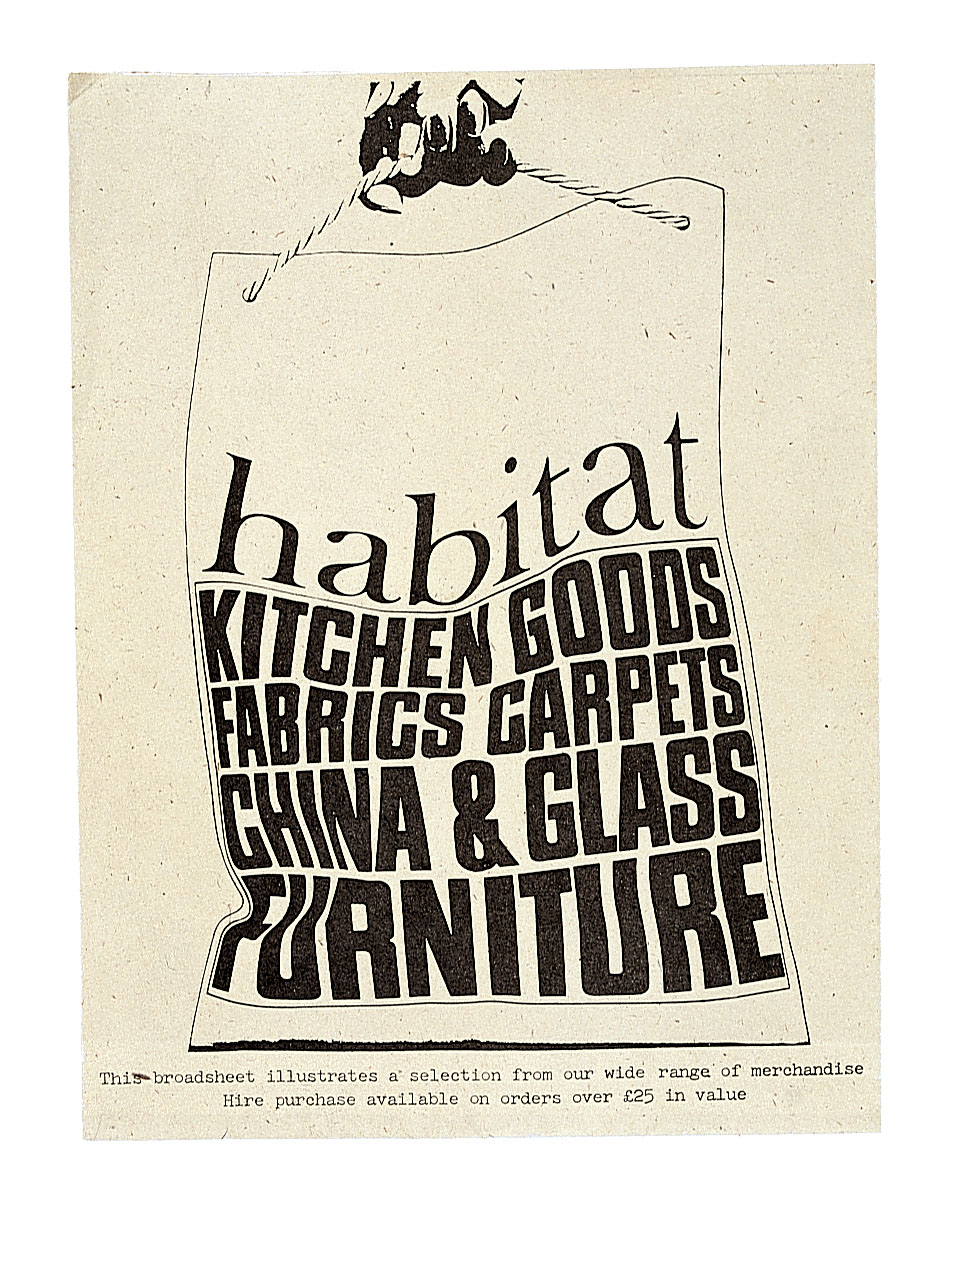 Original Habitat logo introduced in 1964